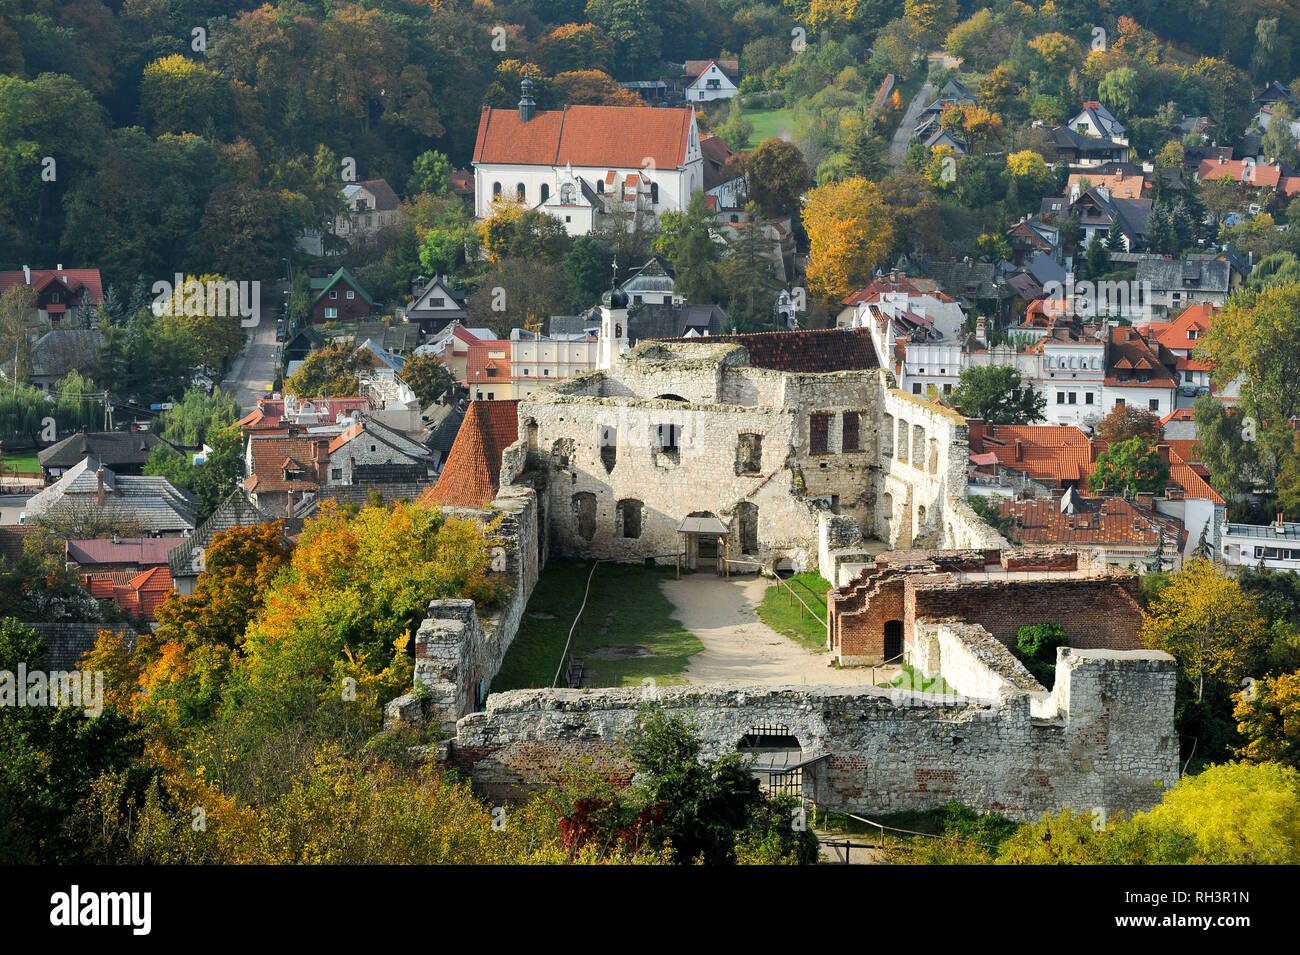 Ruins of Gothic castle built in XIV century by Polish King Kazimierz Wielki and Franciscan baroque Church of St. Mary buily 1589 and Franciscan monast - Stock Image